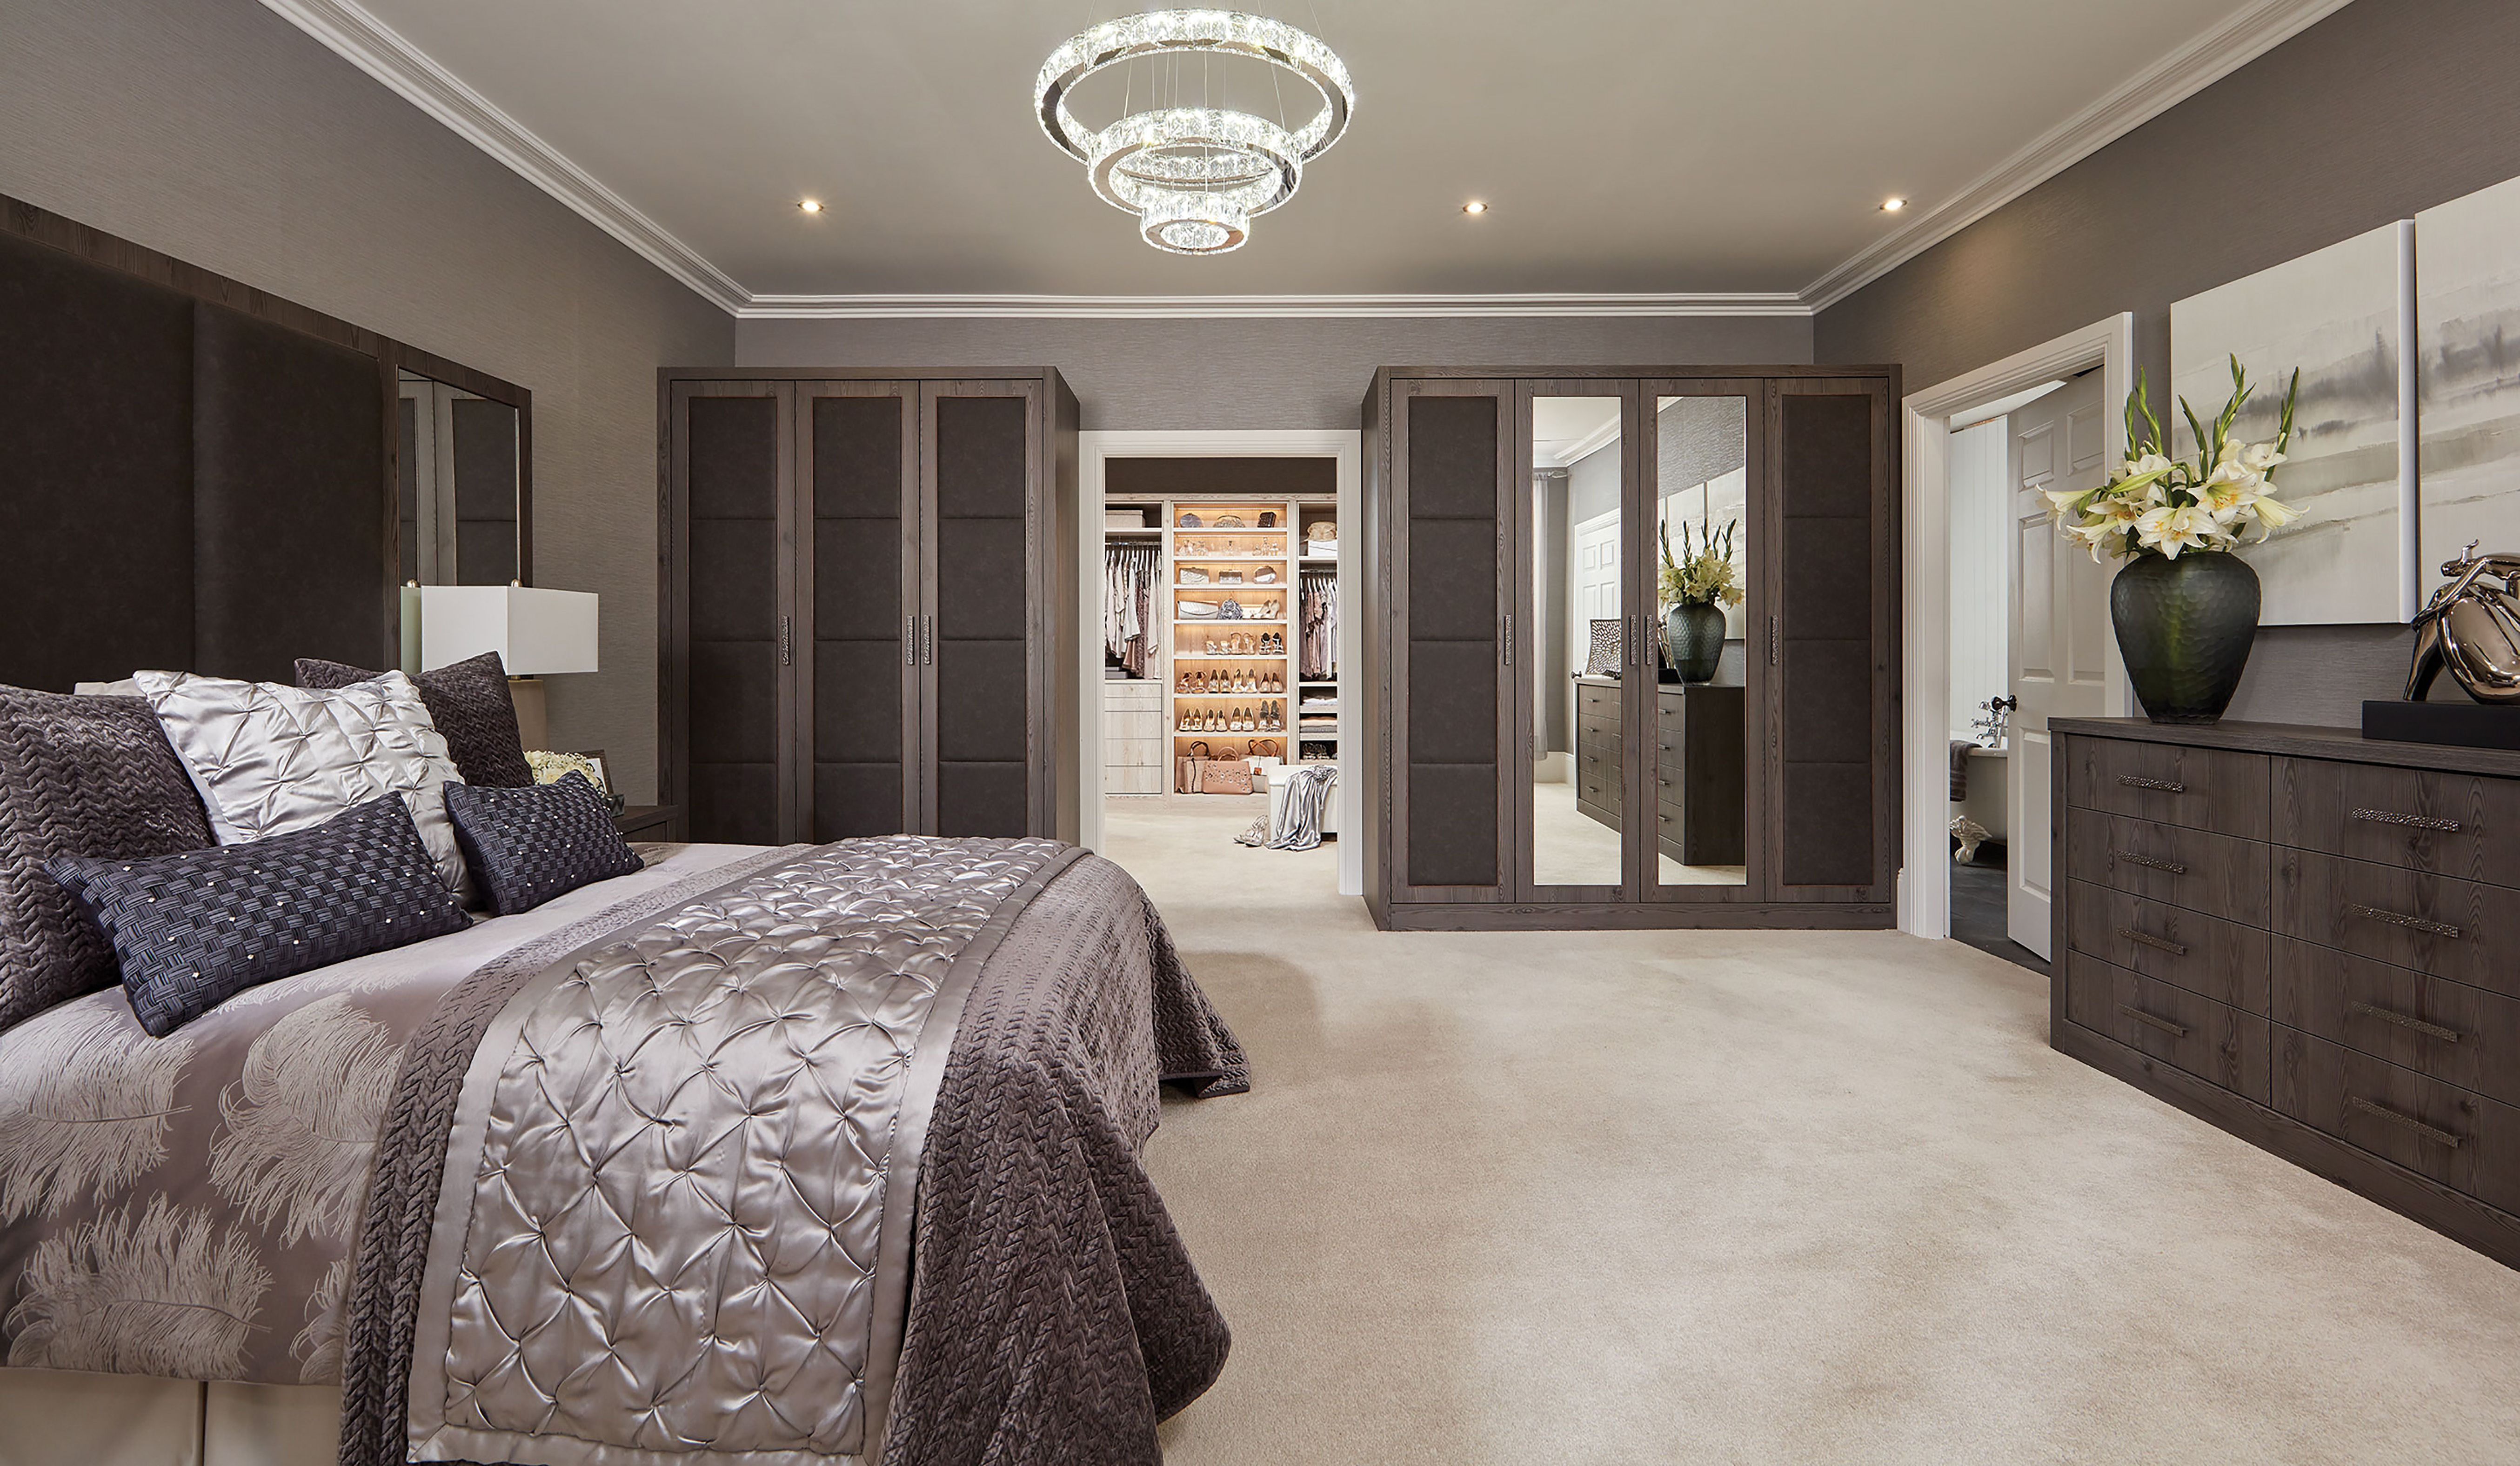 Luxurious bedroom furniture with built in dressing room and